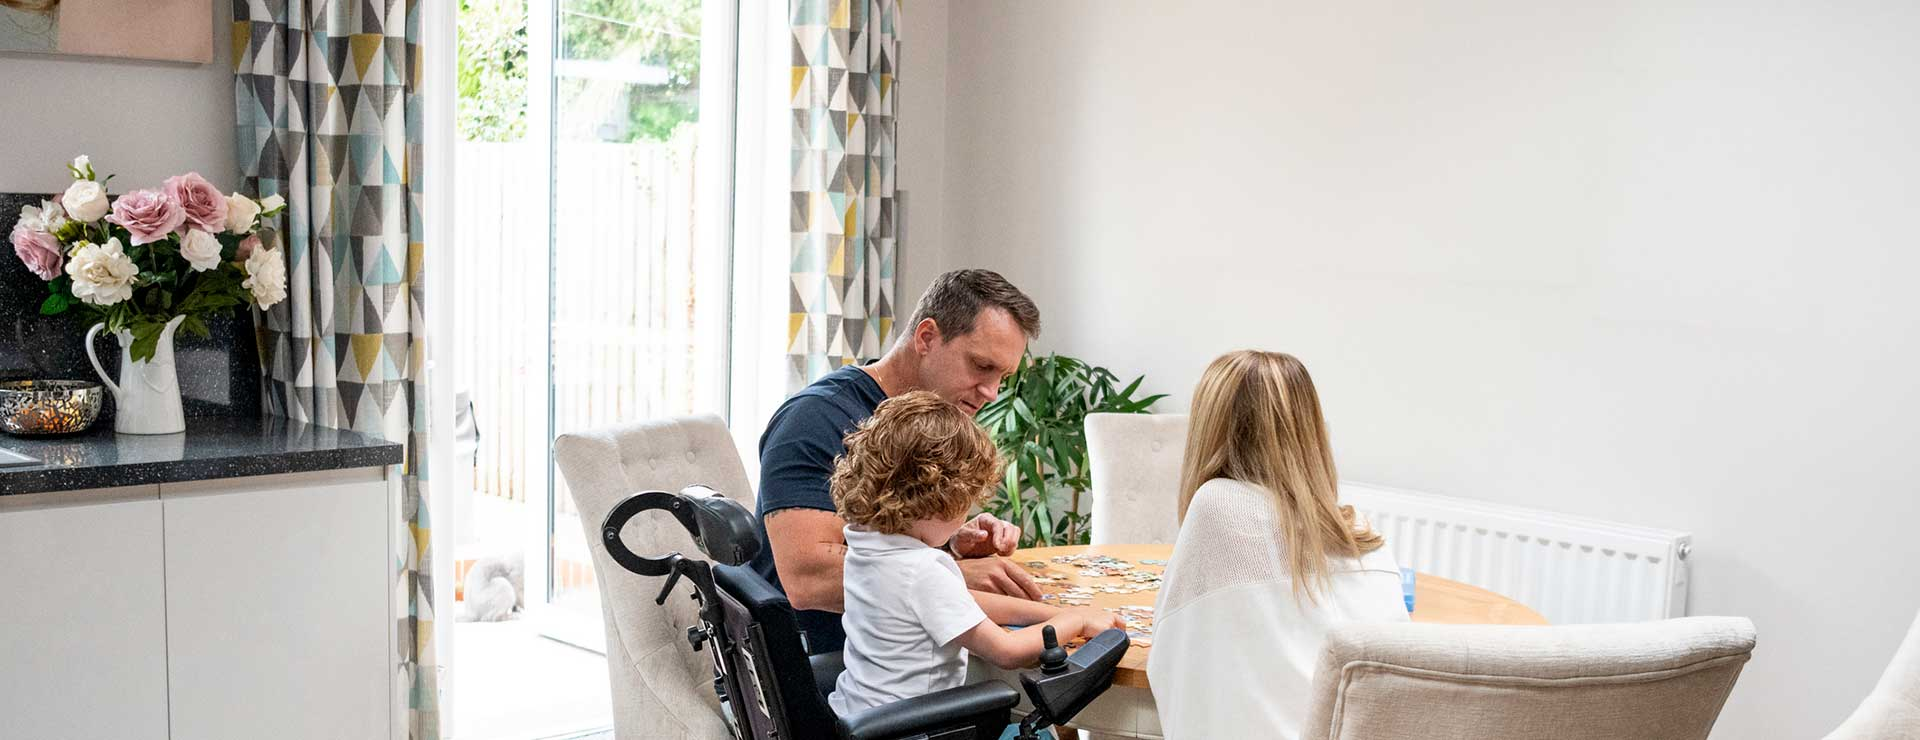 Child with muscular dystrophy with parent's doing a puzzle at table